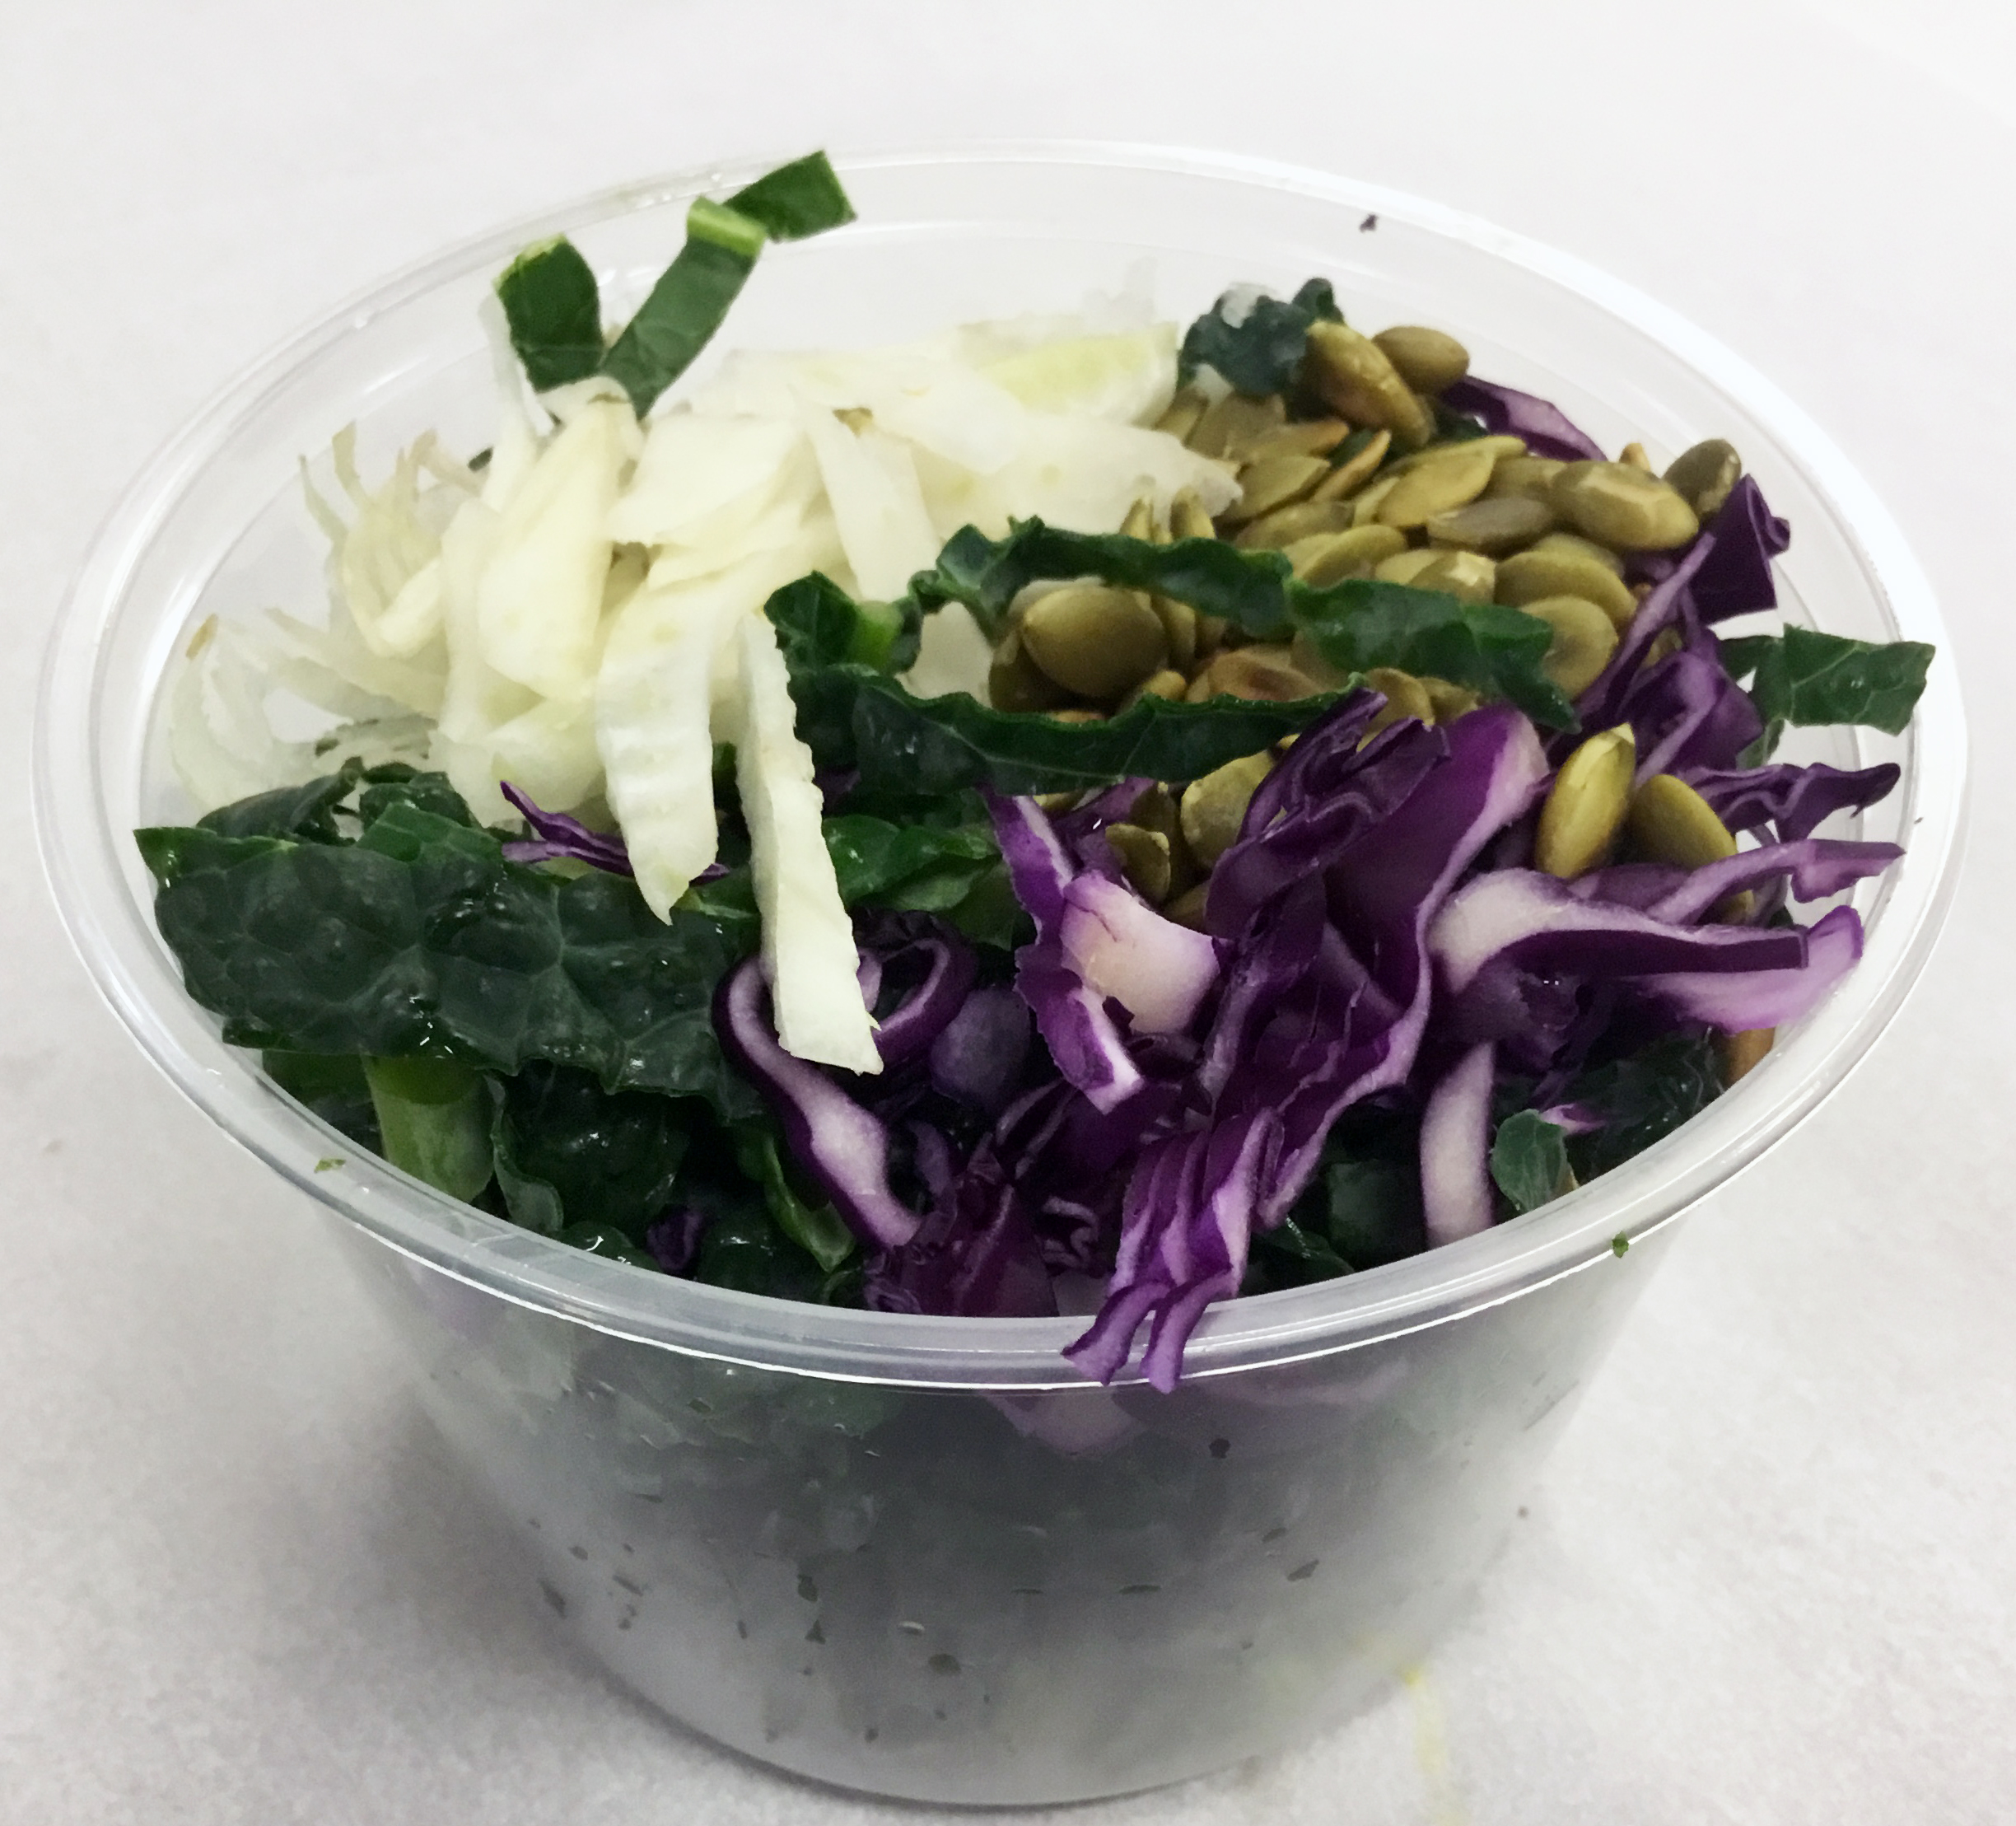 Lacinato kale with red cabbage, fennel and roasted pumpkin seeds.